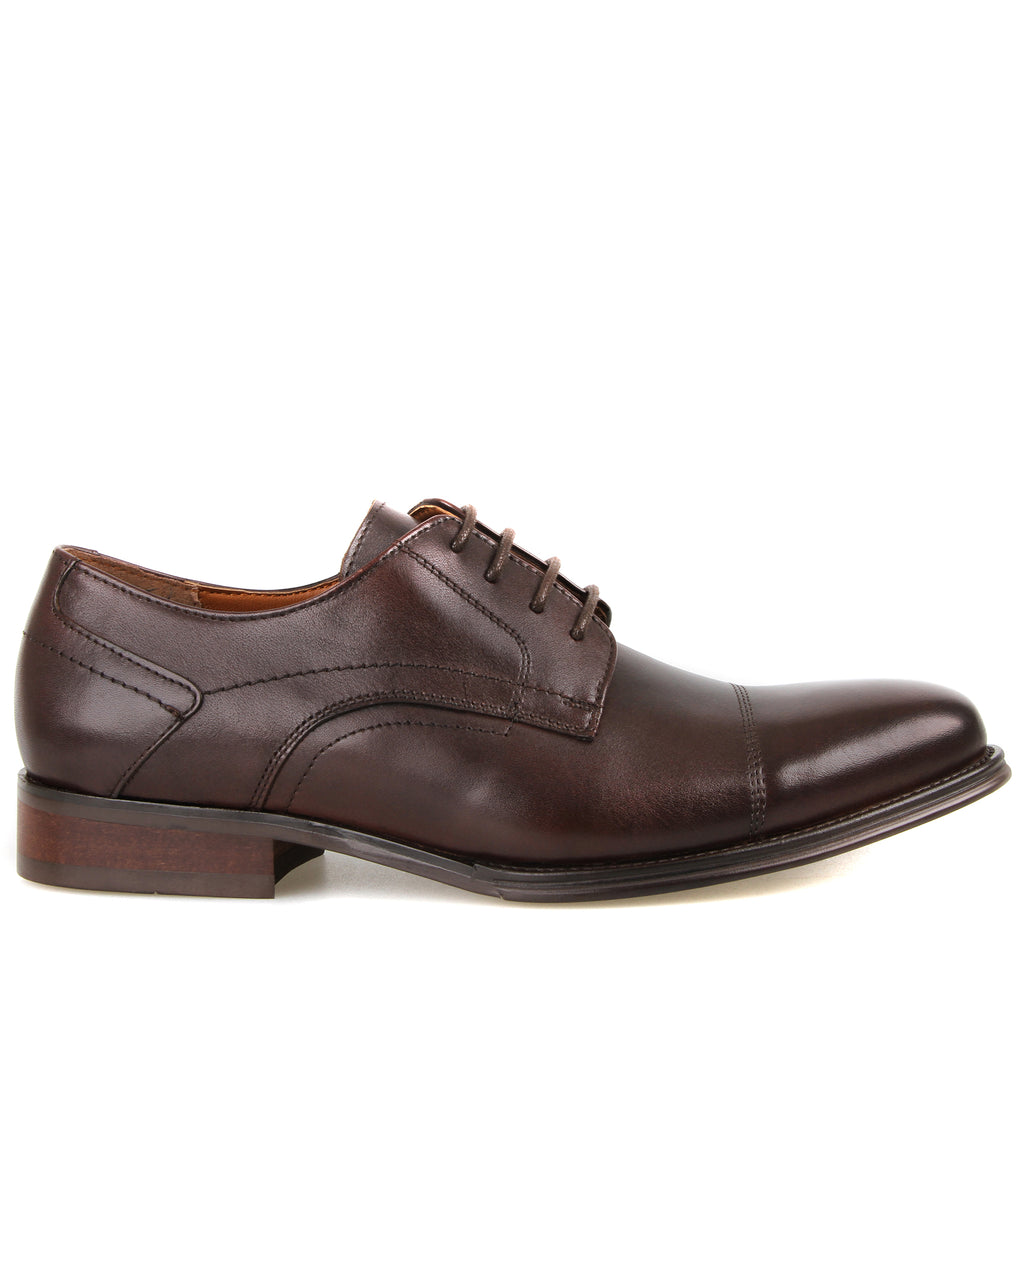 Tomaz F203 Derbies Formal Shoes (Brown)